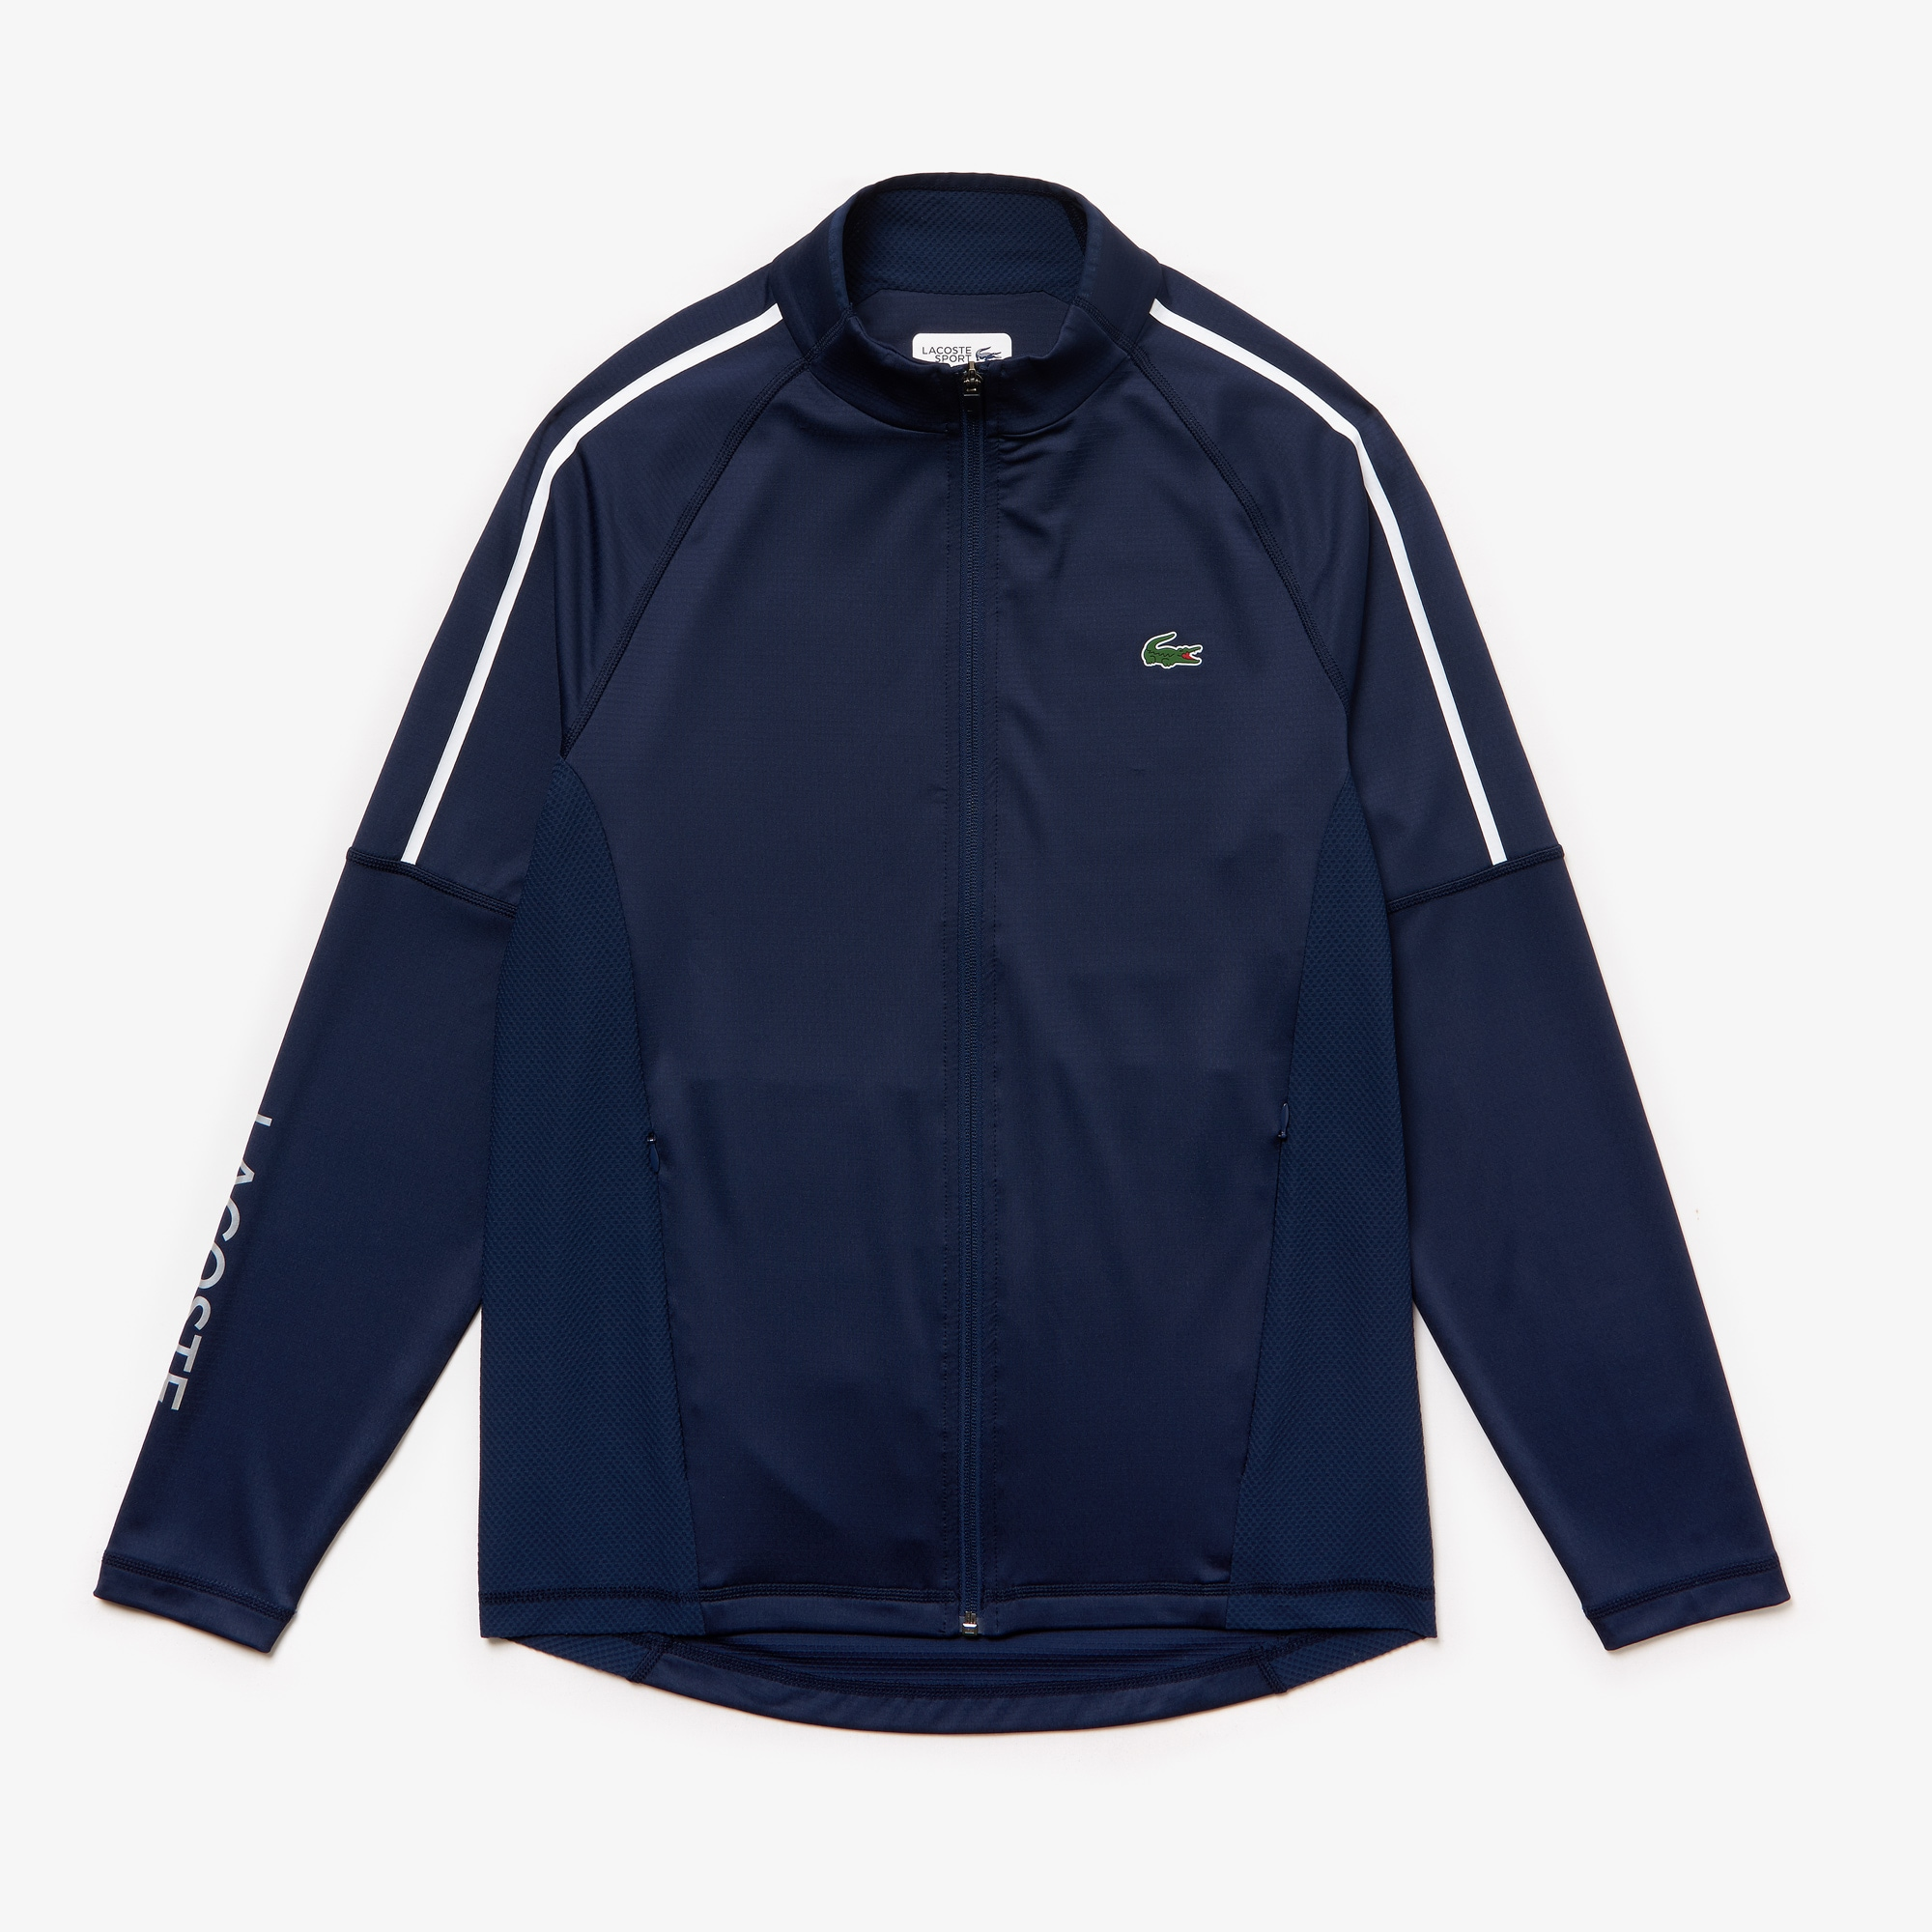 Men's SPORT Technical Golf Sweatshirt